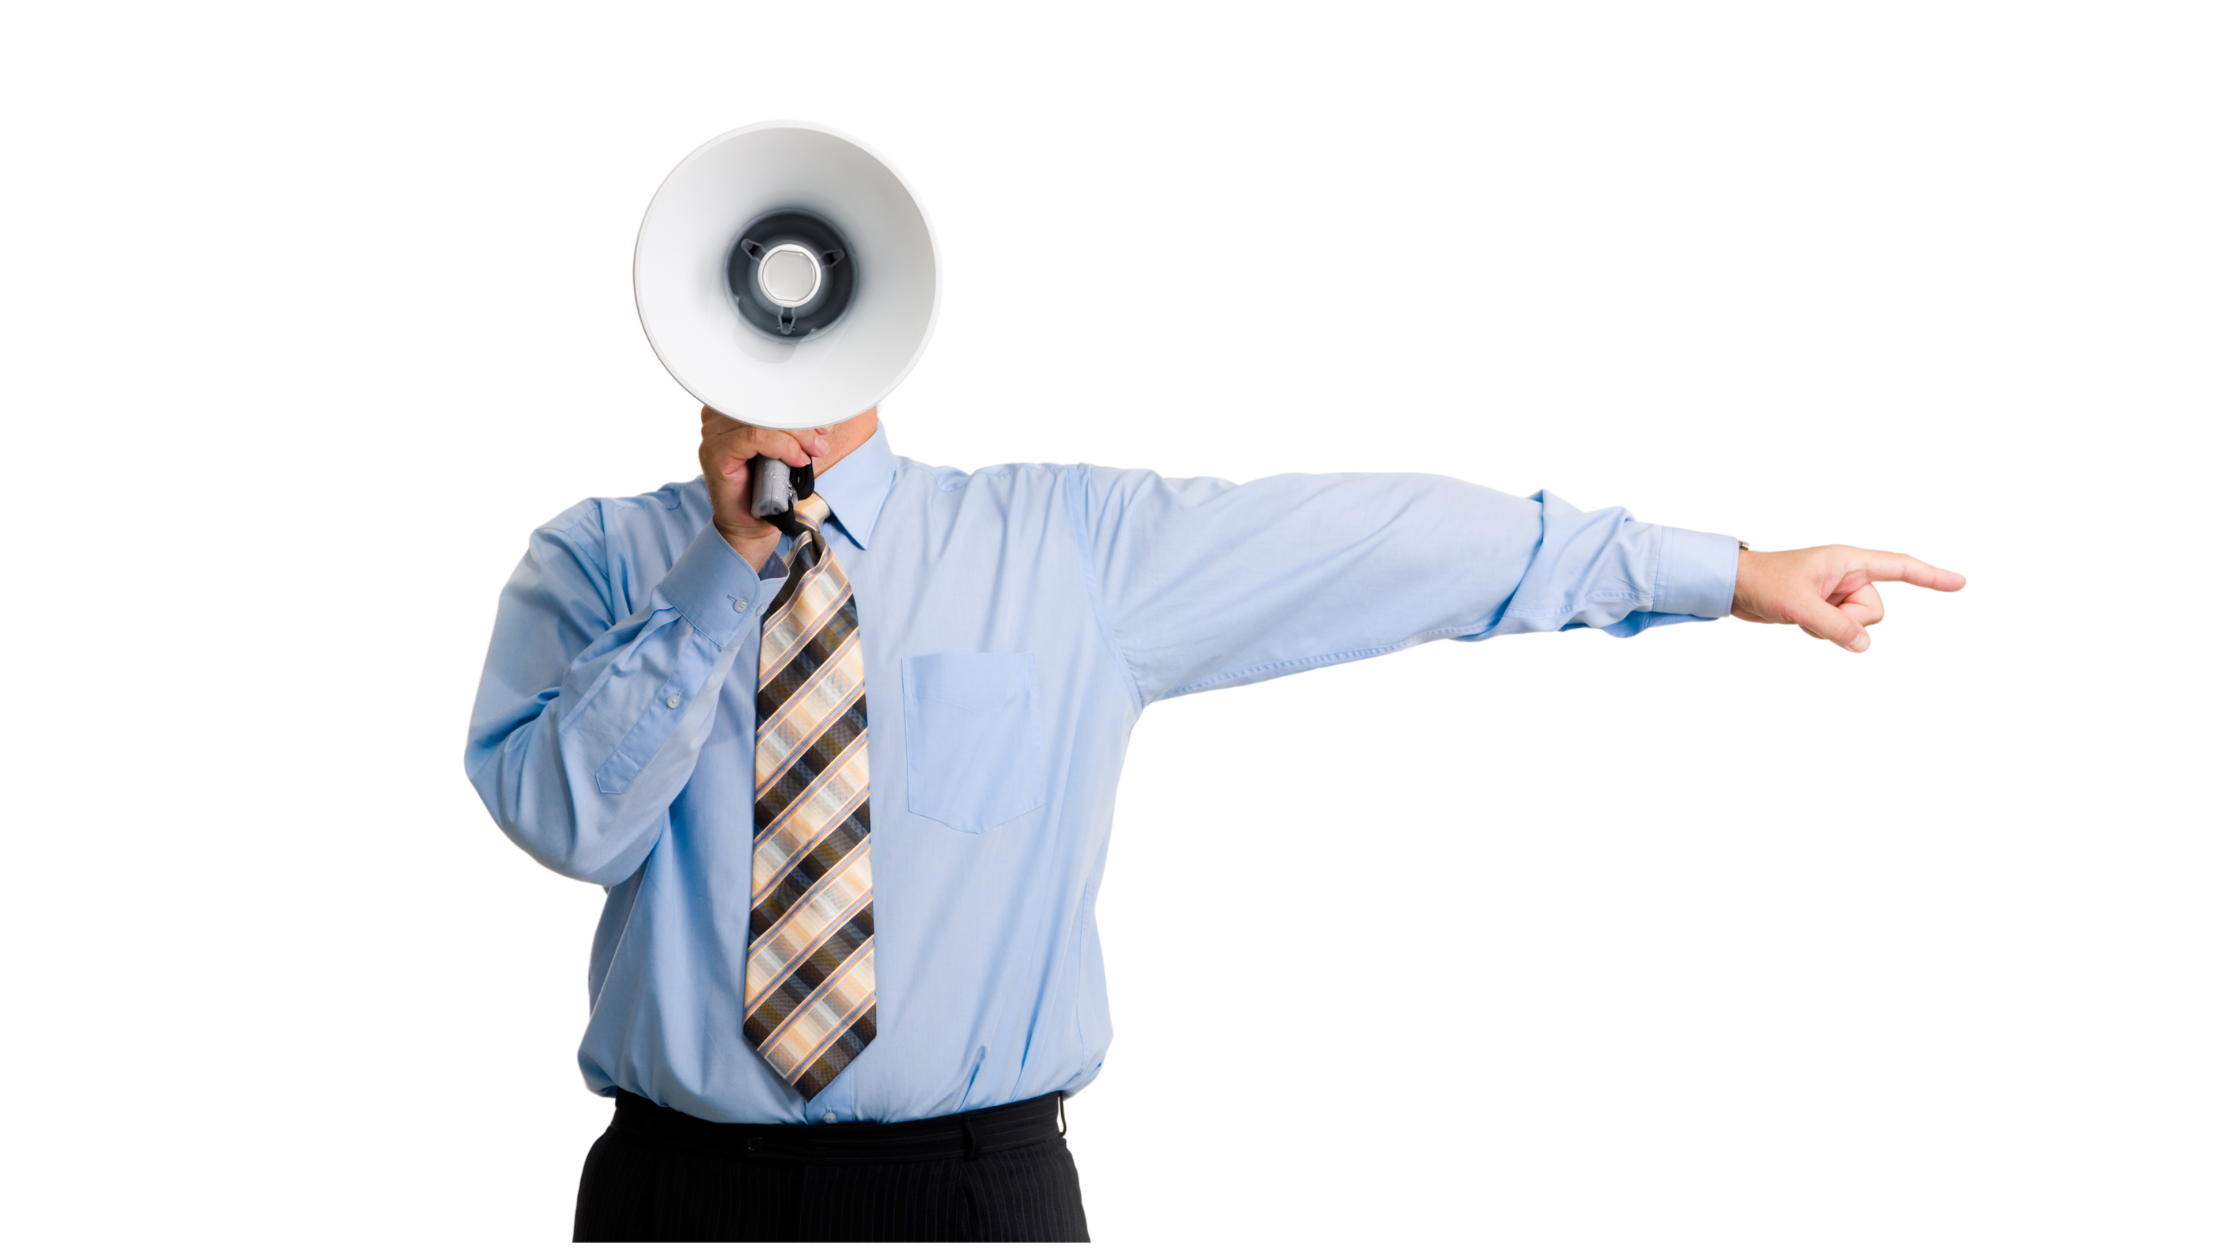 Boss with a megaphone